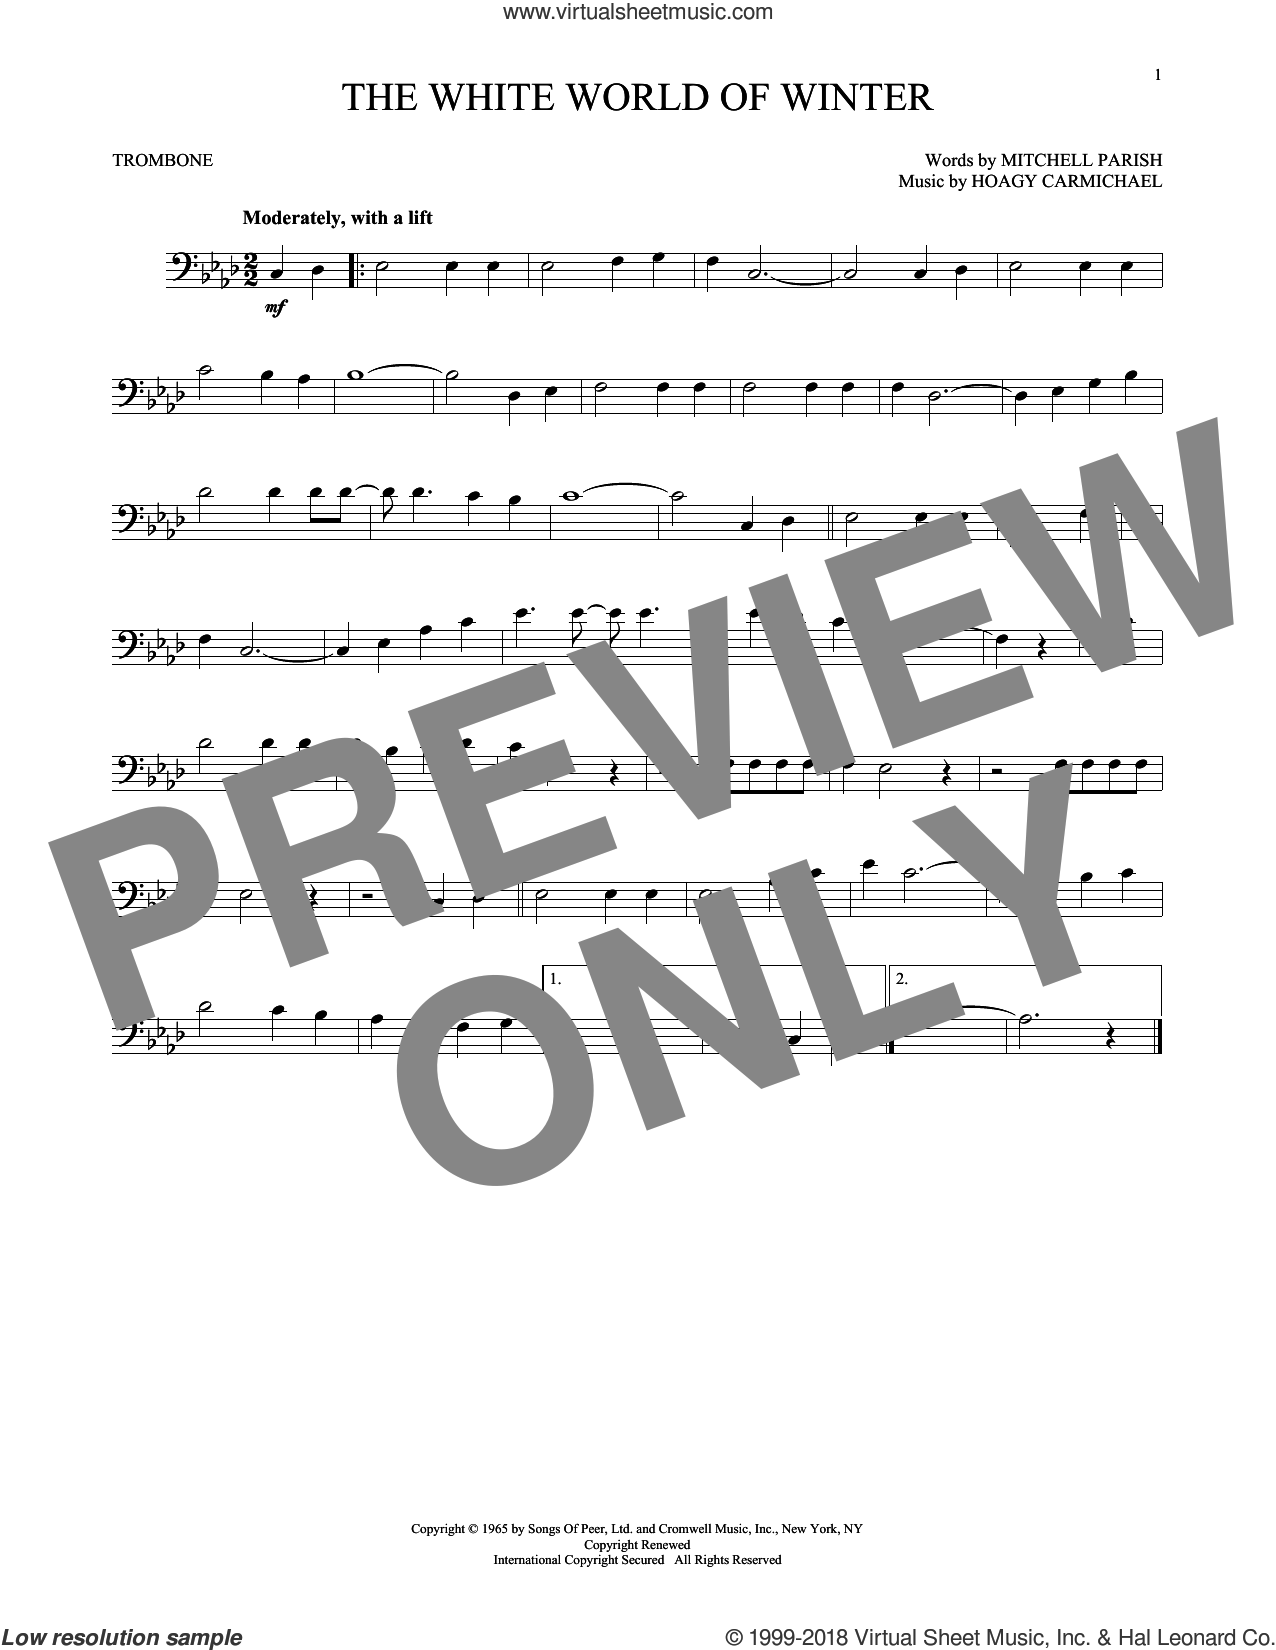 The White World Of Winter sheet music for trombone solo by Hoagy Carmichael and Mitchell Parish, intermediate skill level